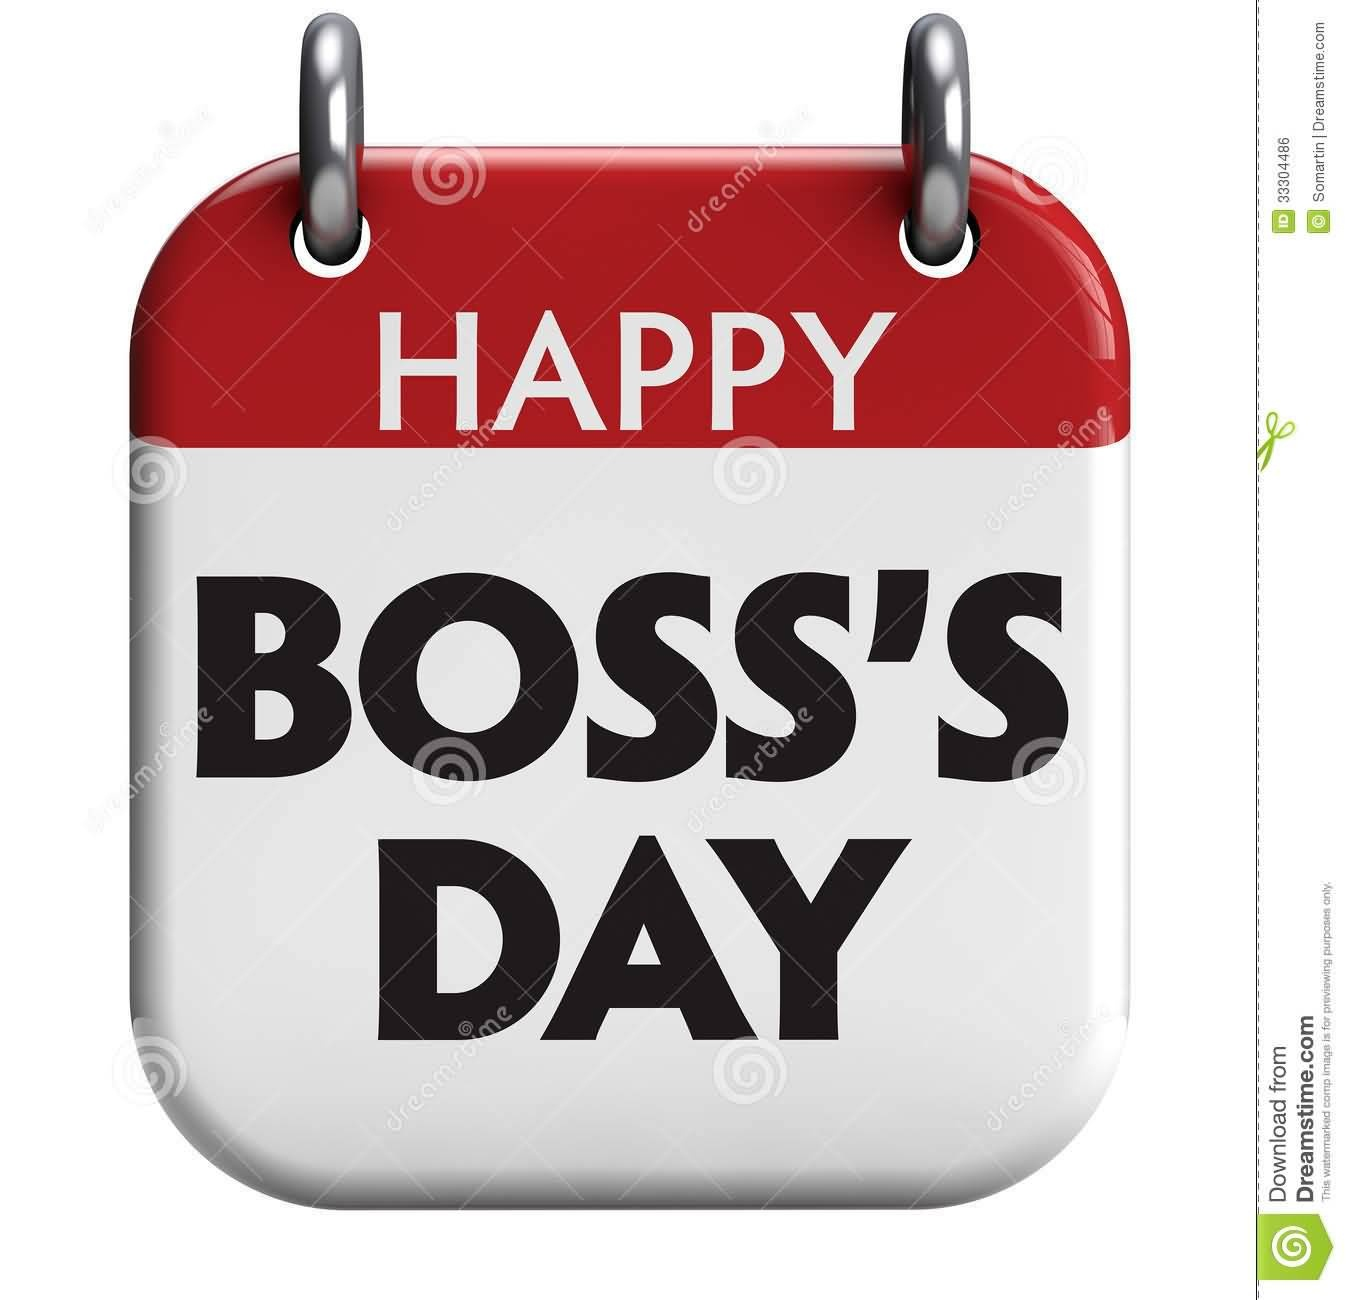 50 Happy Boss's Day Wishes Pictures And Images - Happy Boss Day Cards Free Printable